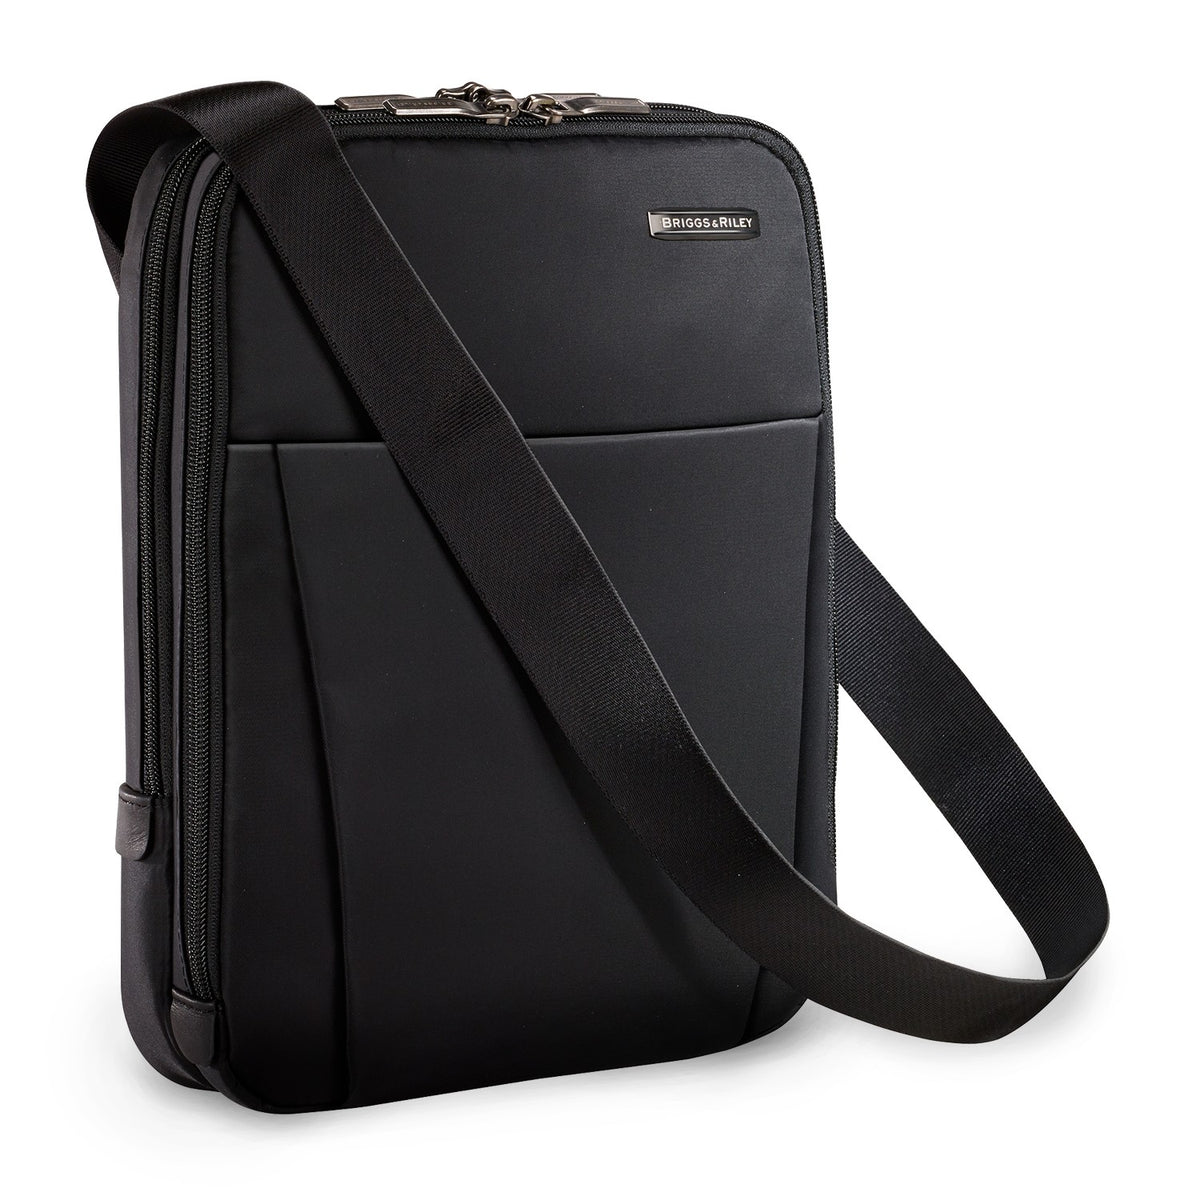 Briggs & Riley Sympatico Crossbody